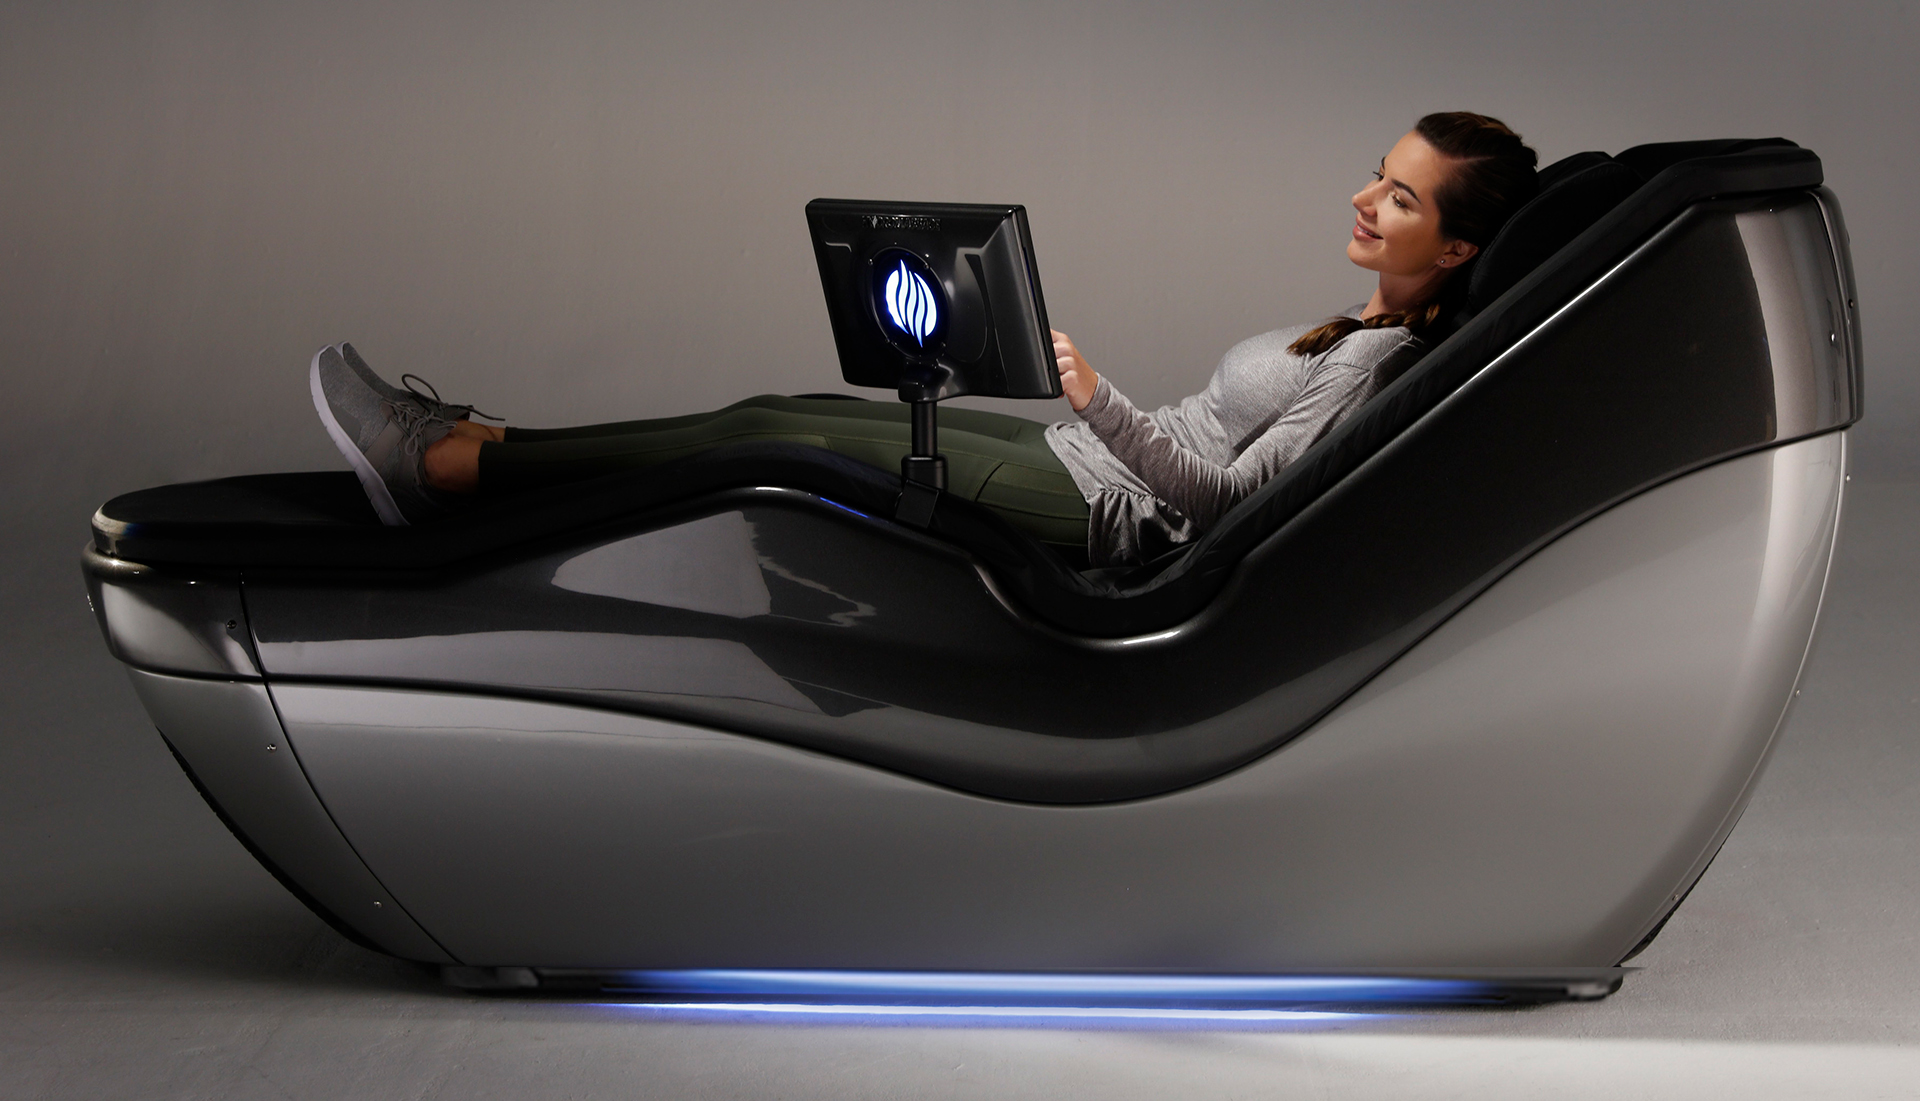 Woman in HydroMassage Lounge pressing button on screen